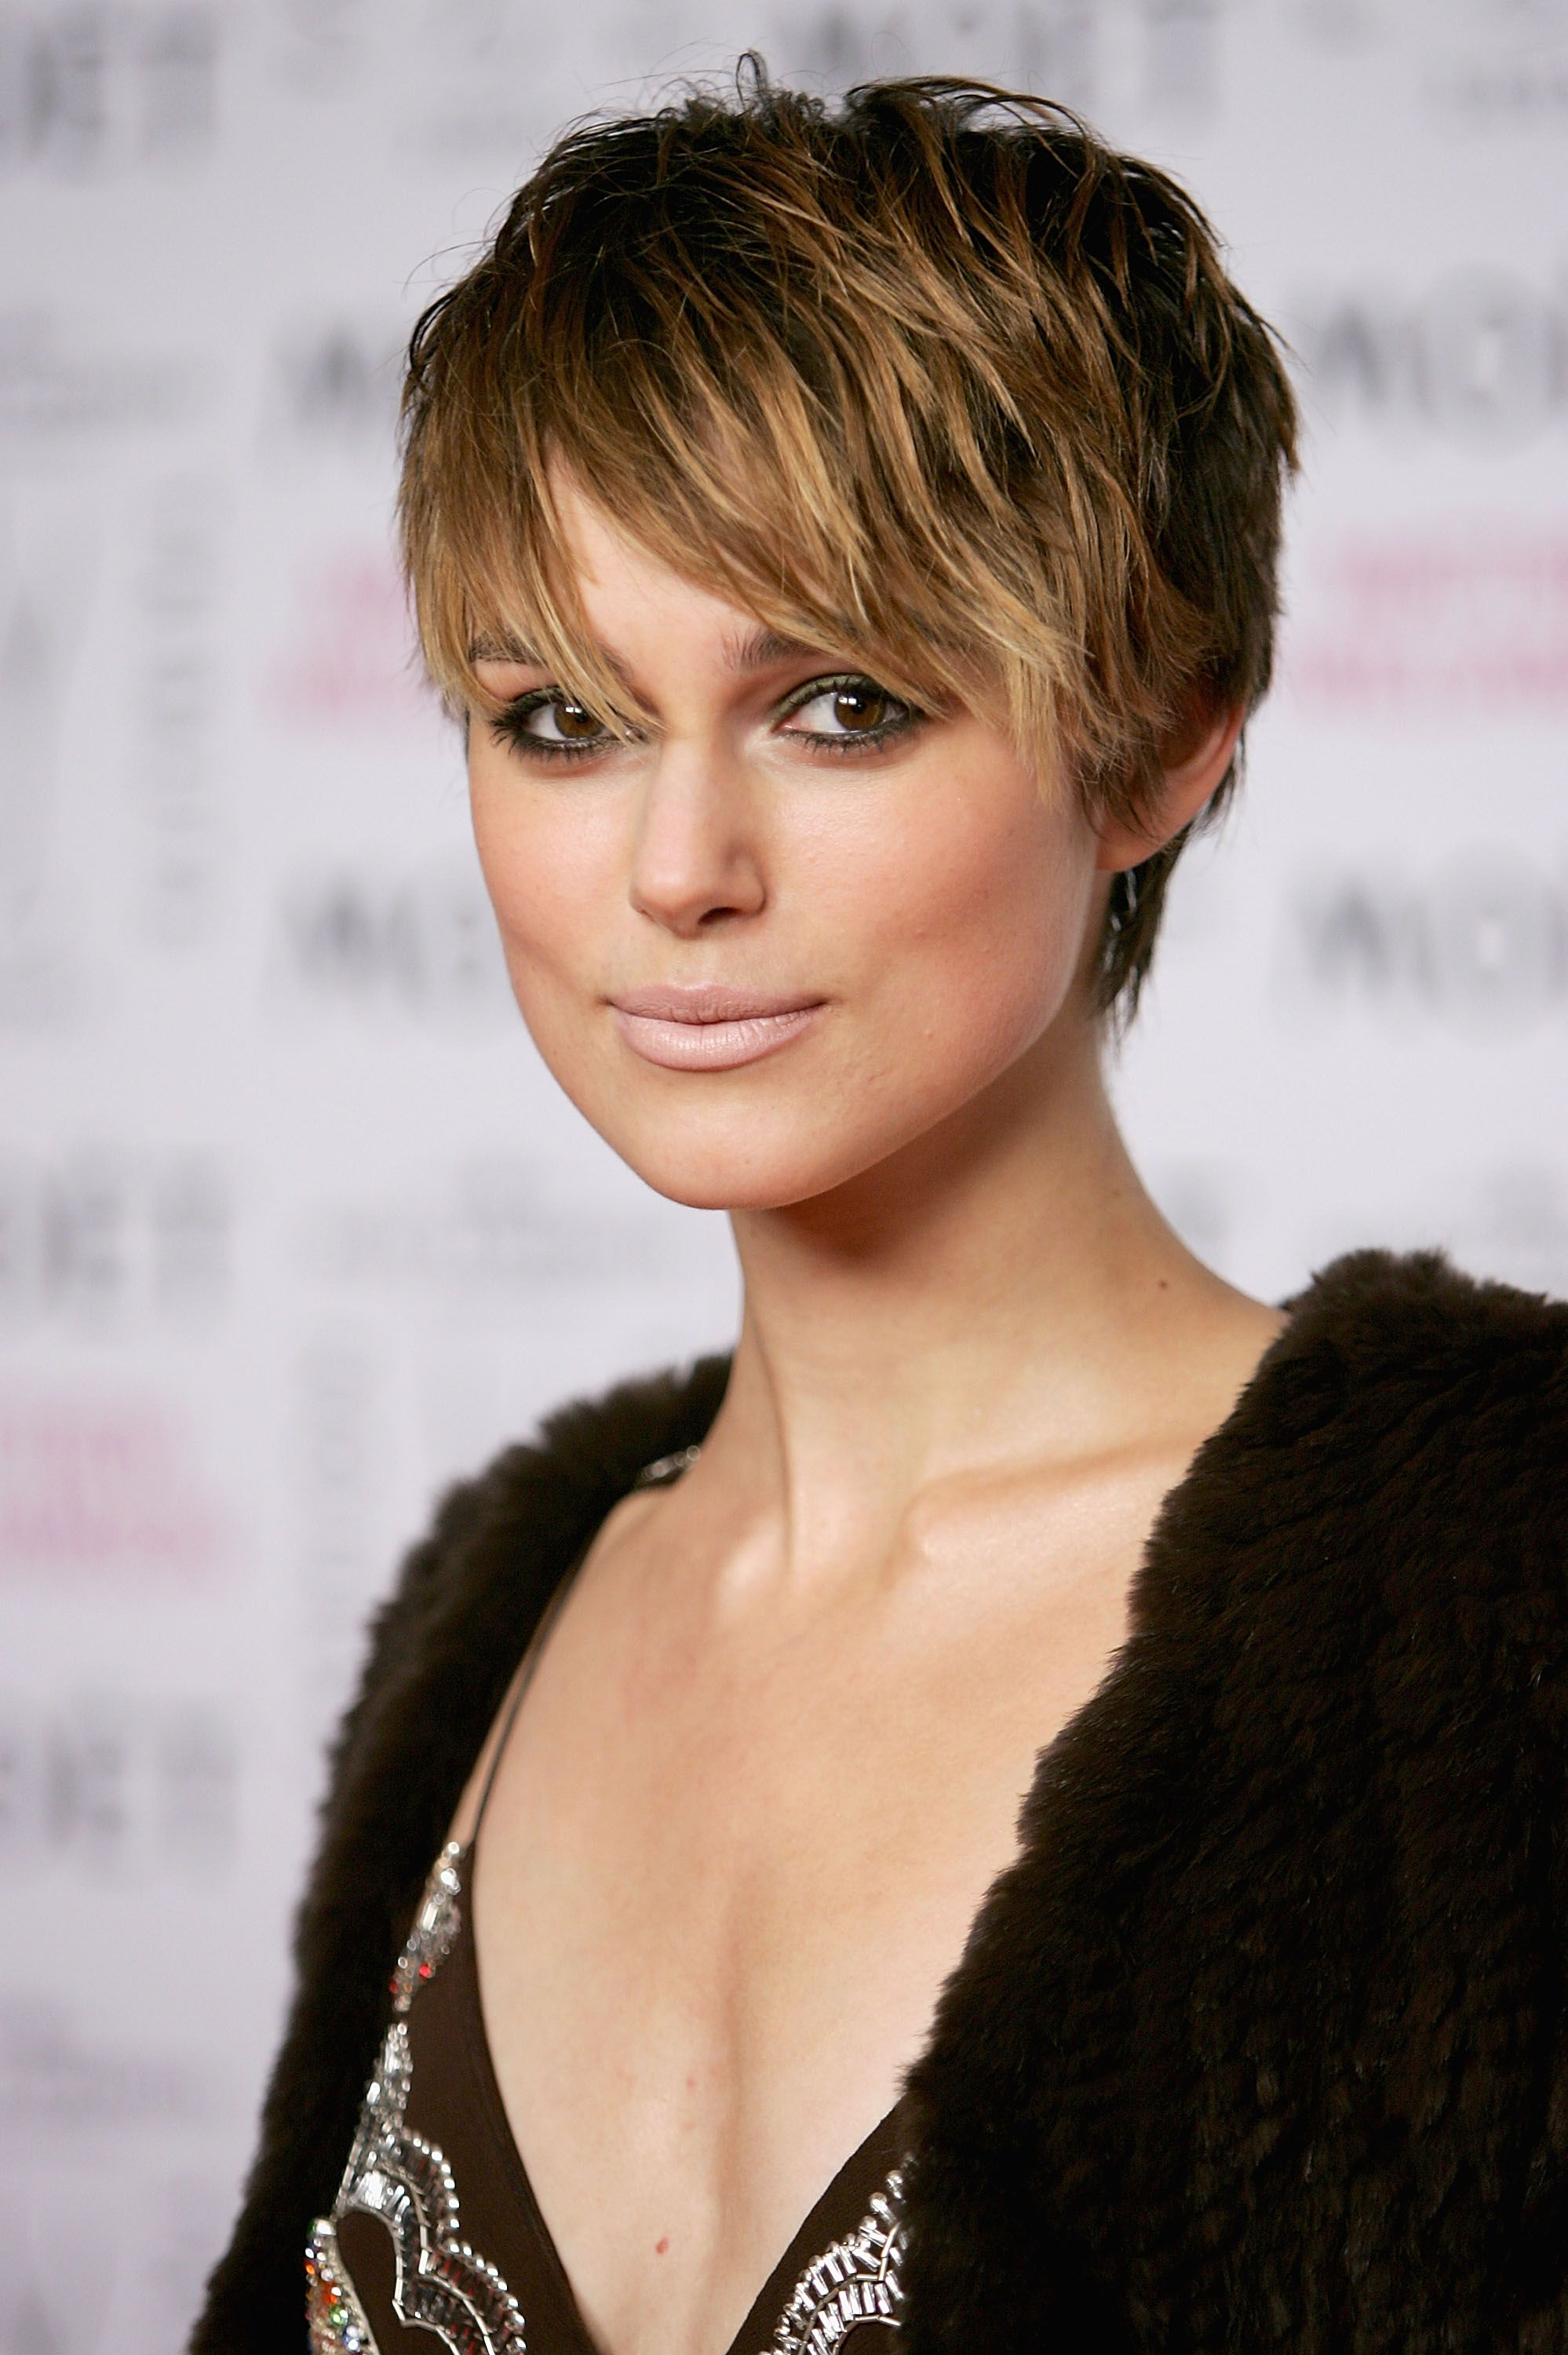 11 Best Short Hairstyles, Haircuts & Short Hair Ideas for 11